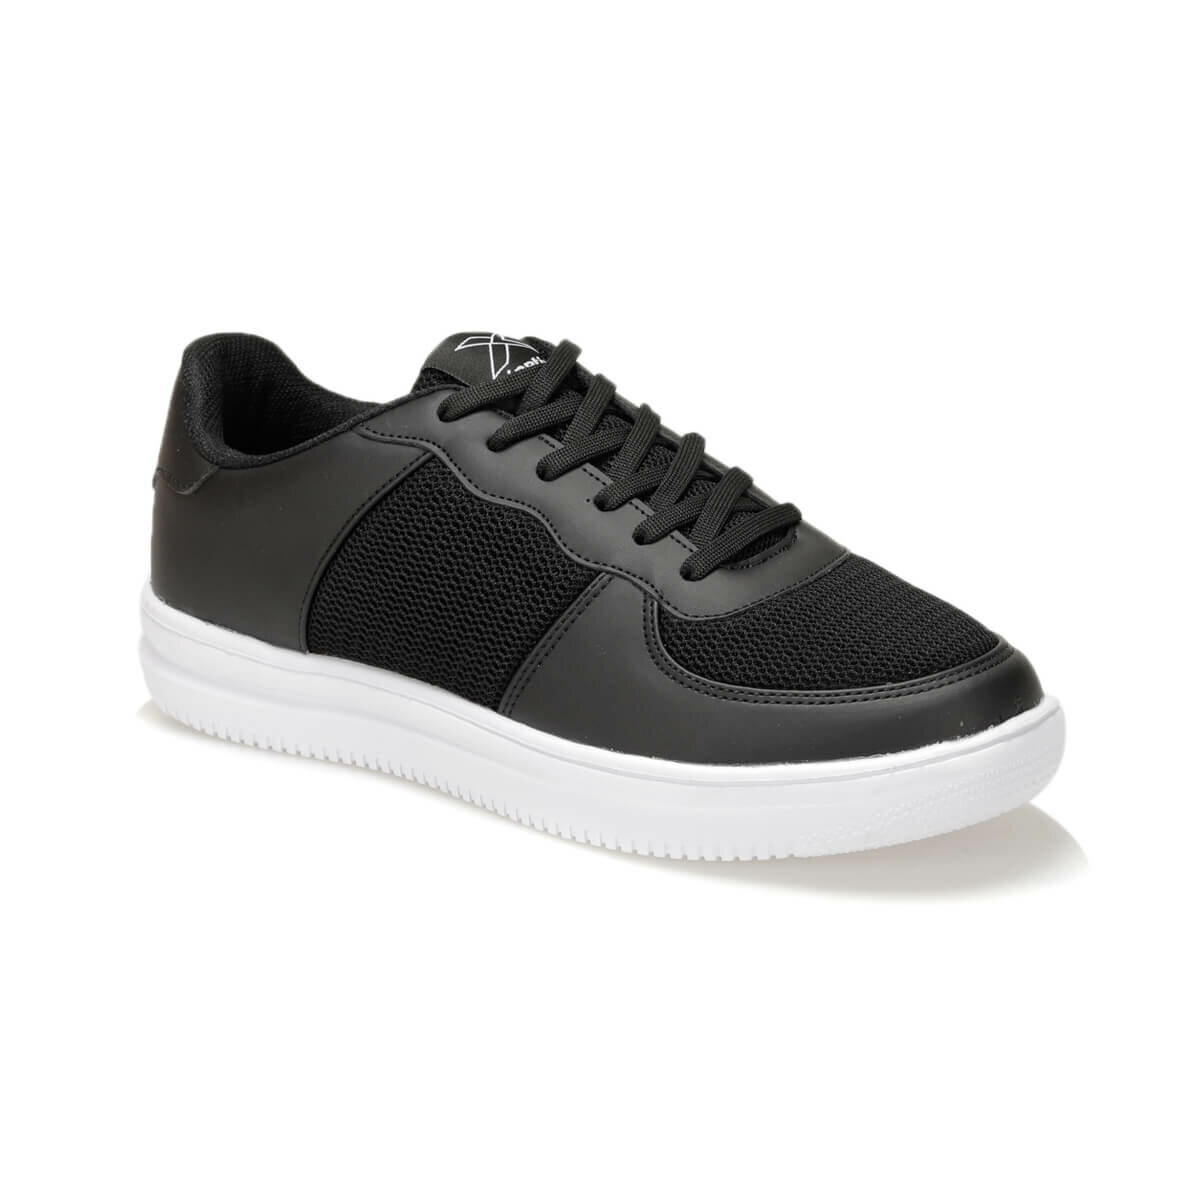 FLO TYSON MESH M Black Men 'S Sneaker Shoes KINETIX